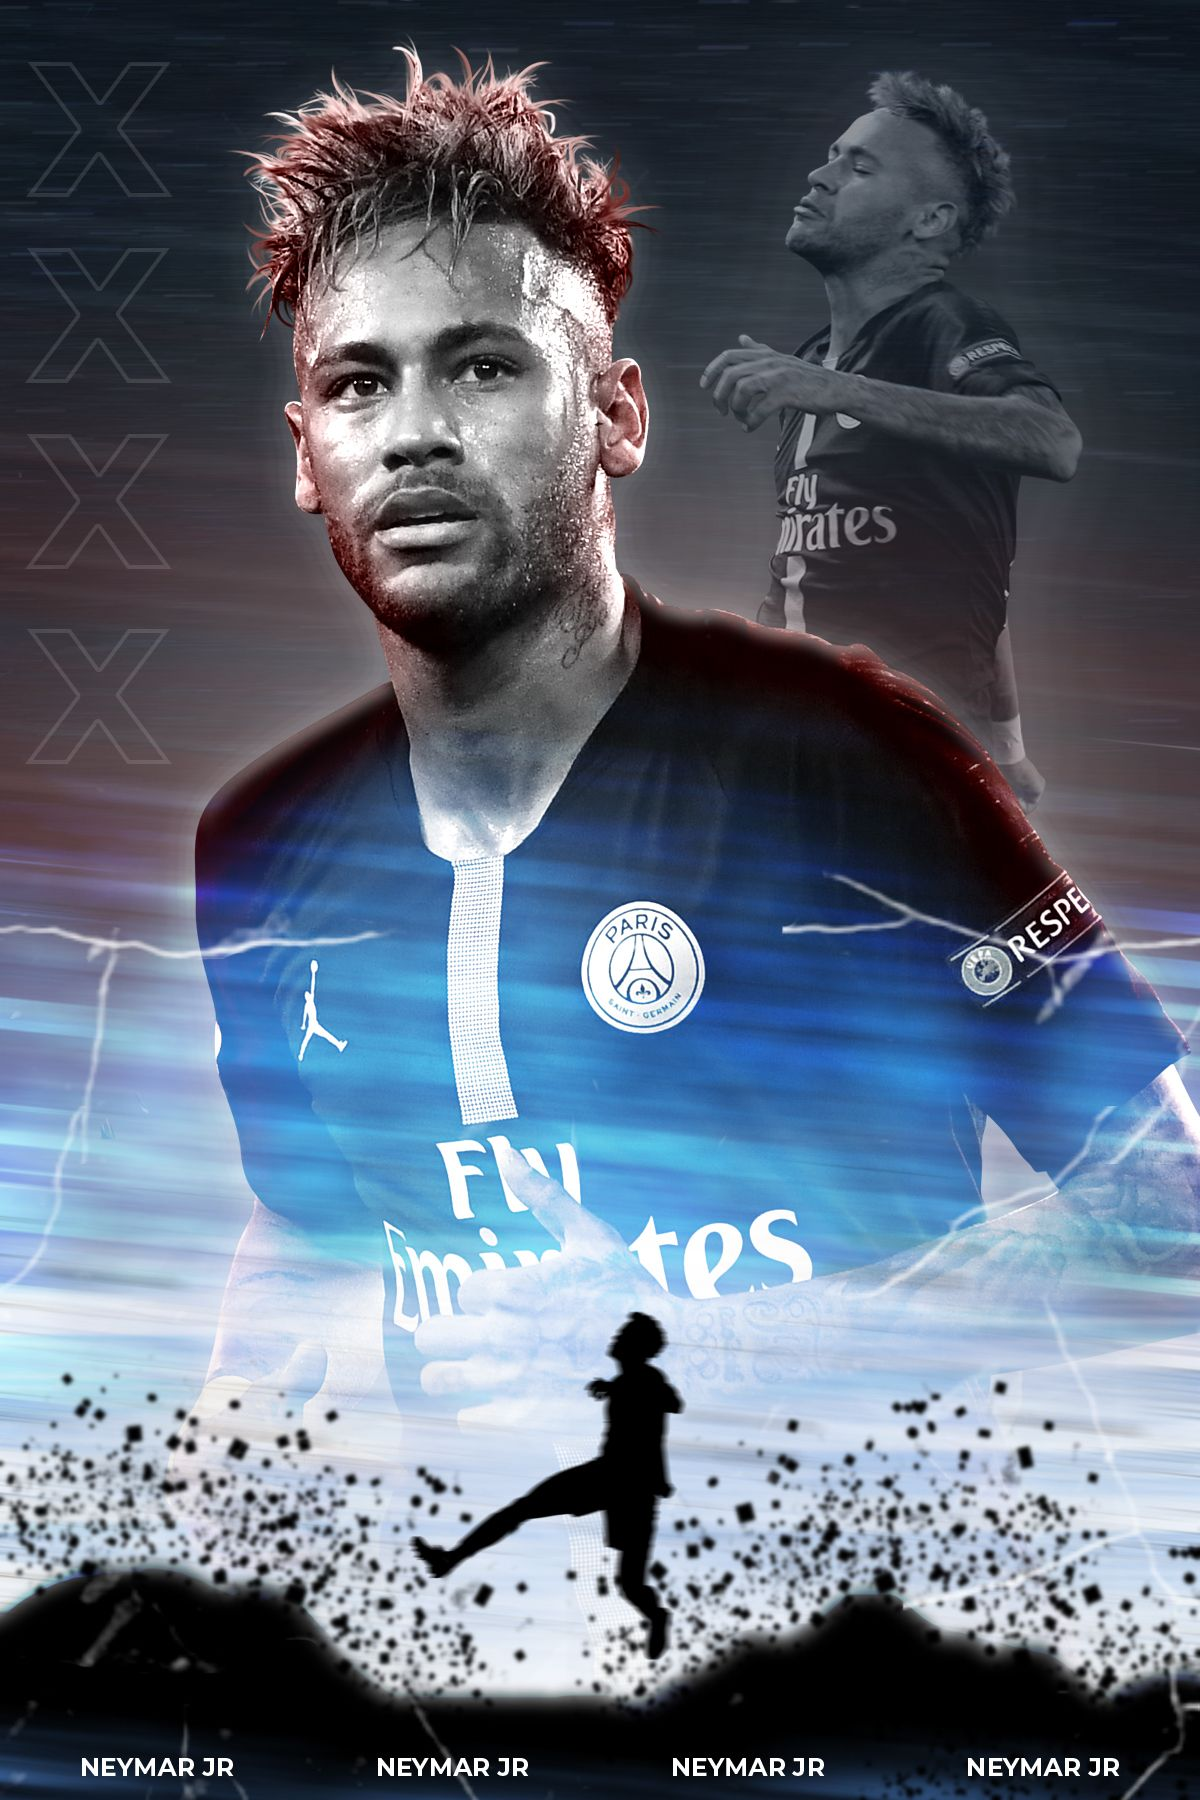 Digital art, photo manipulation, Paris Saint Germain